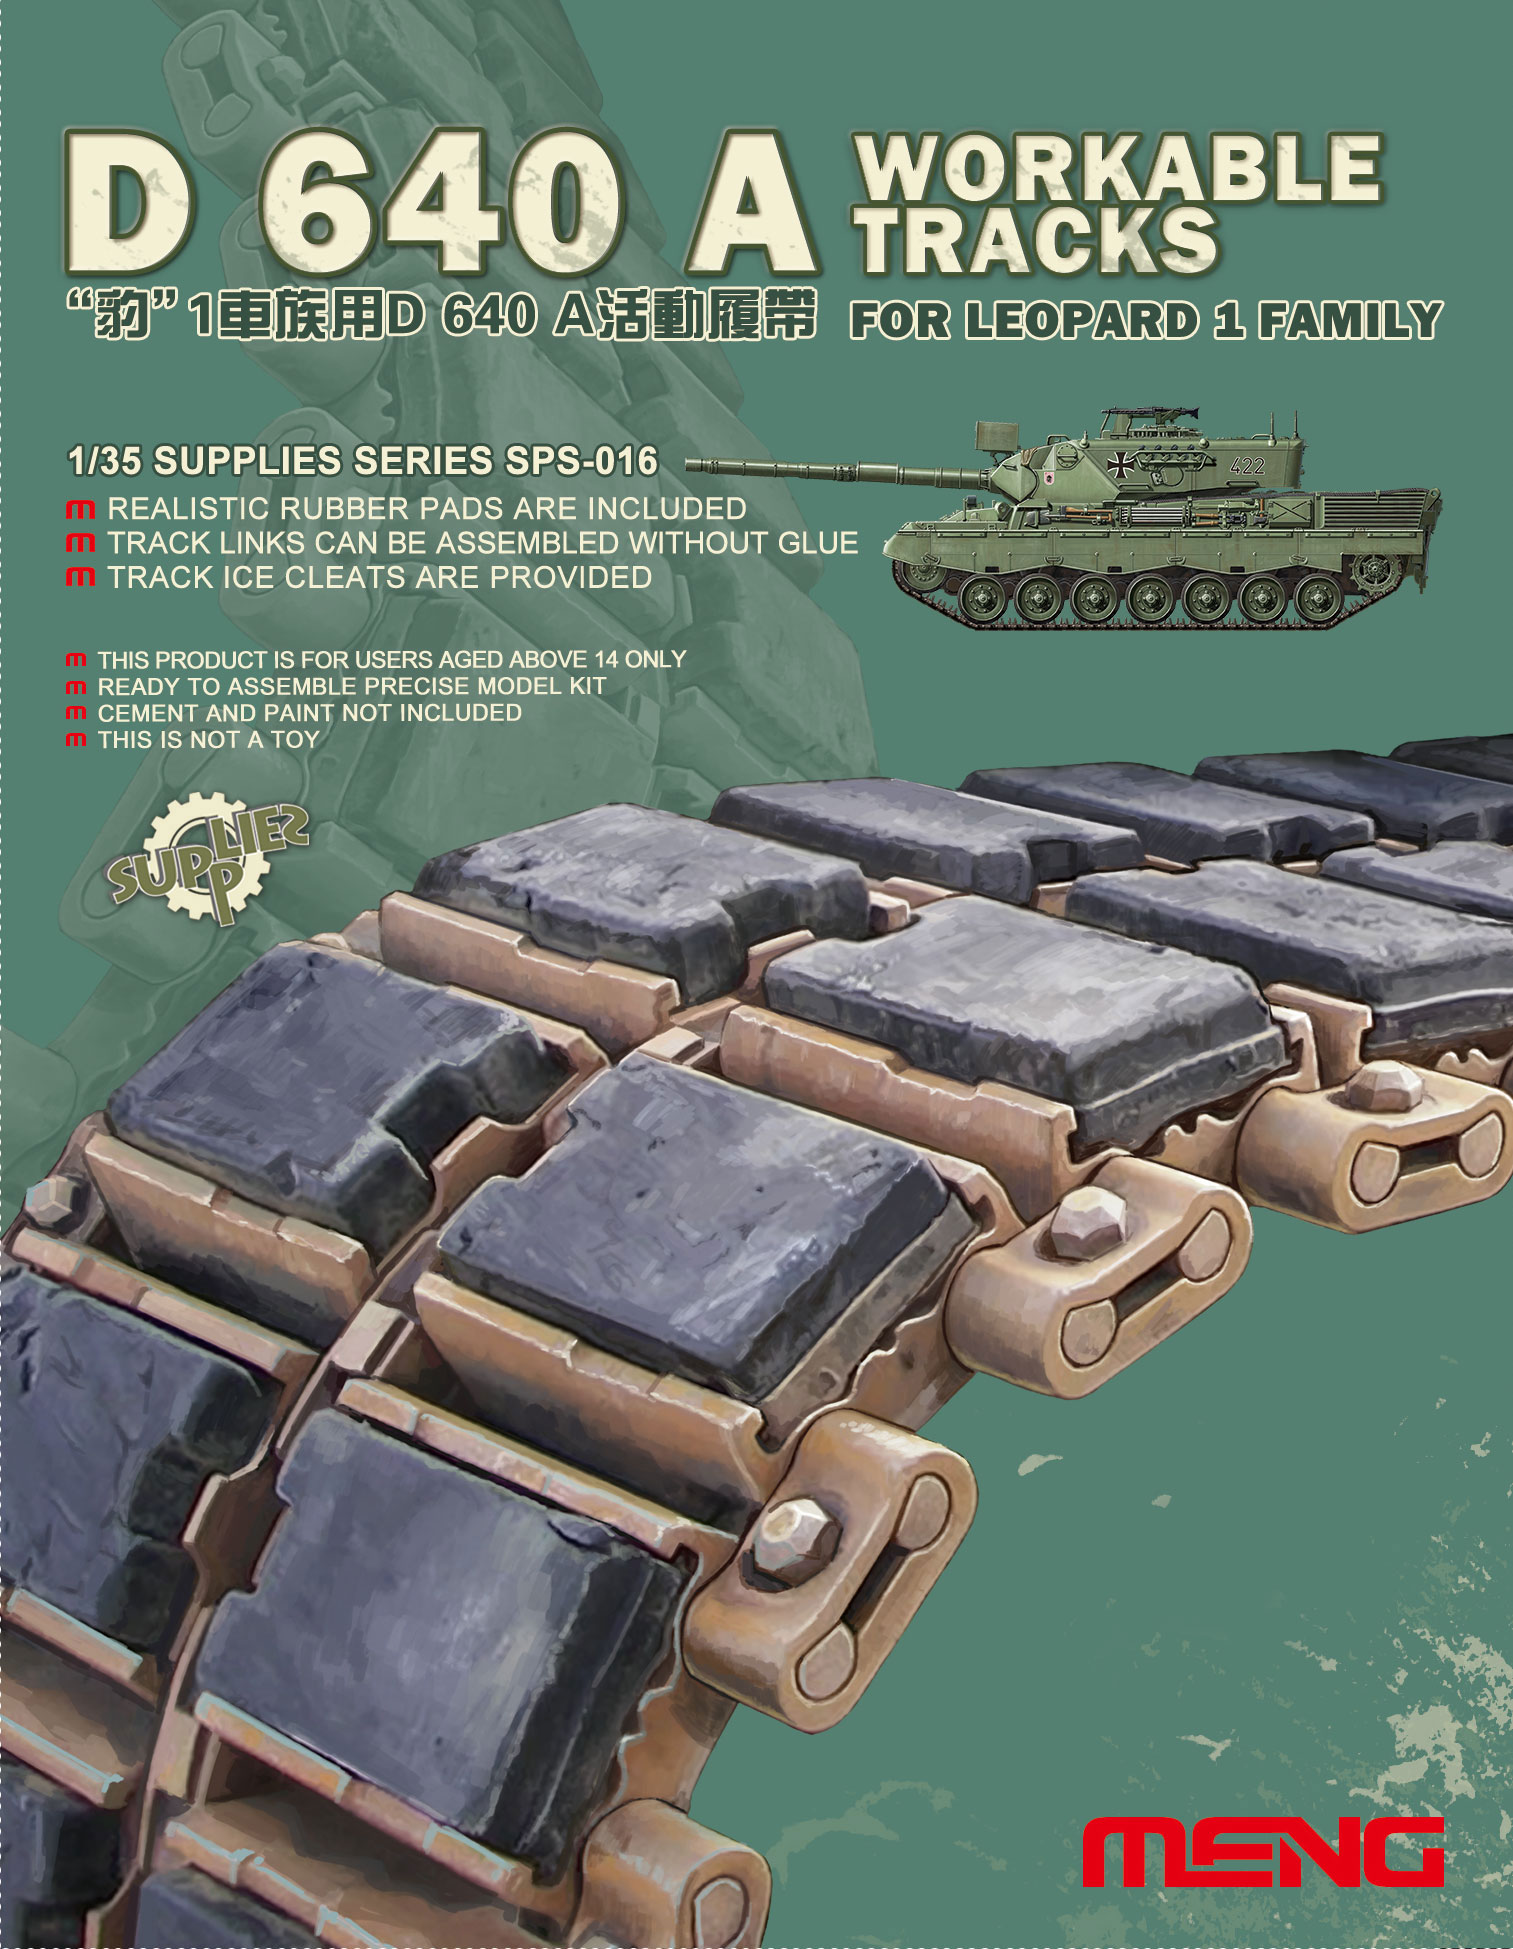 Meng 1/35 D 640 A Workable Tracks For Leopard 1 Family